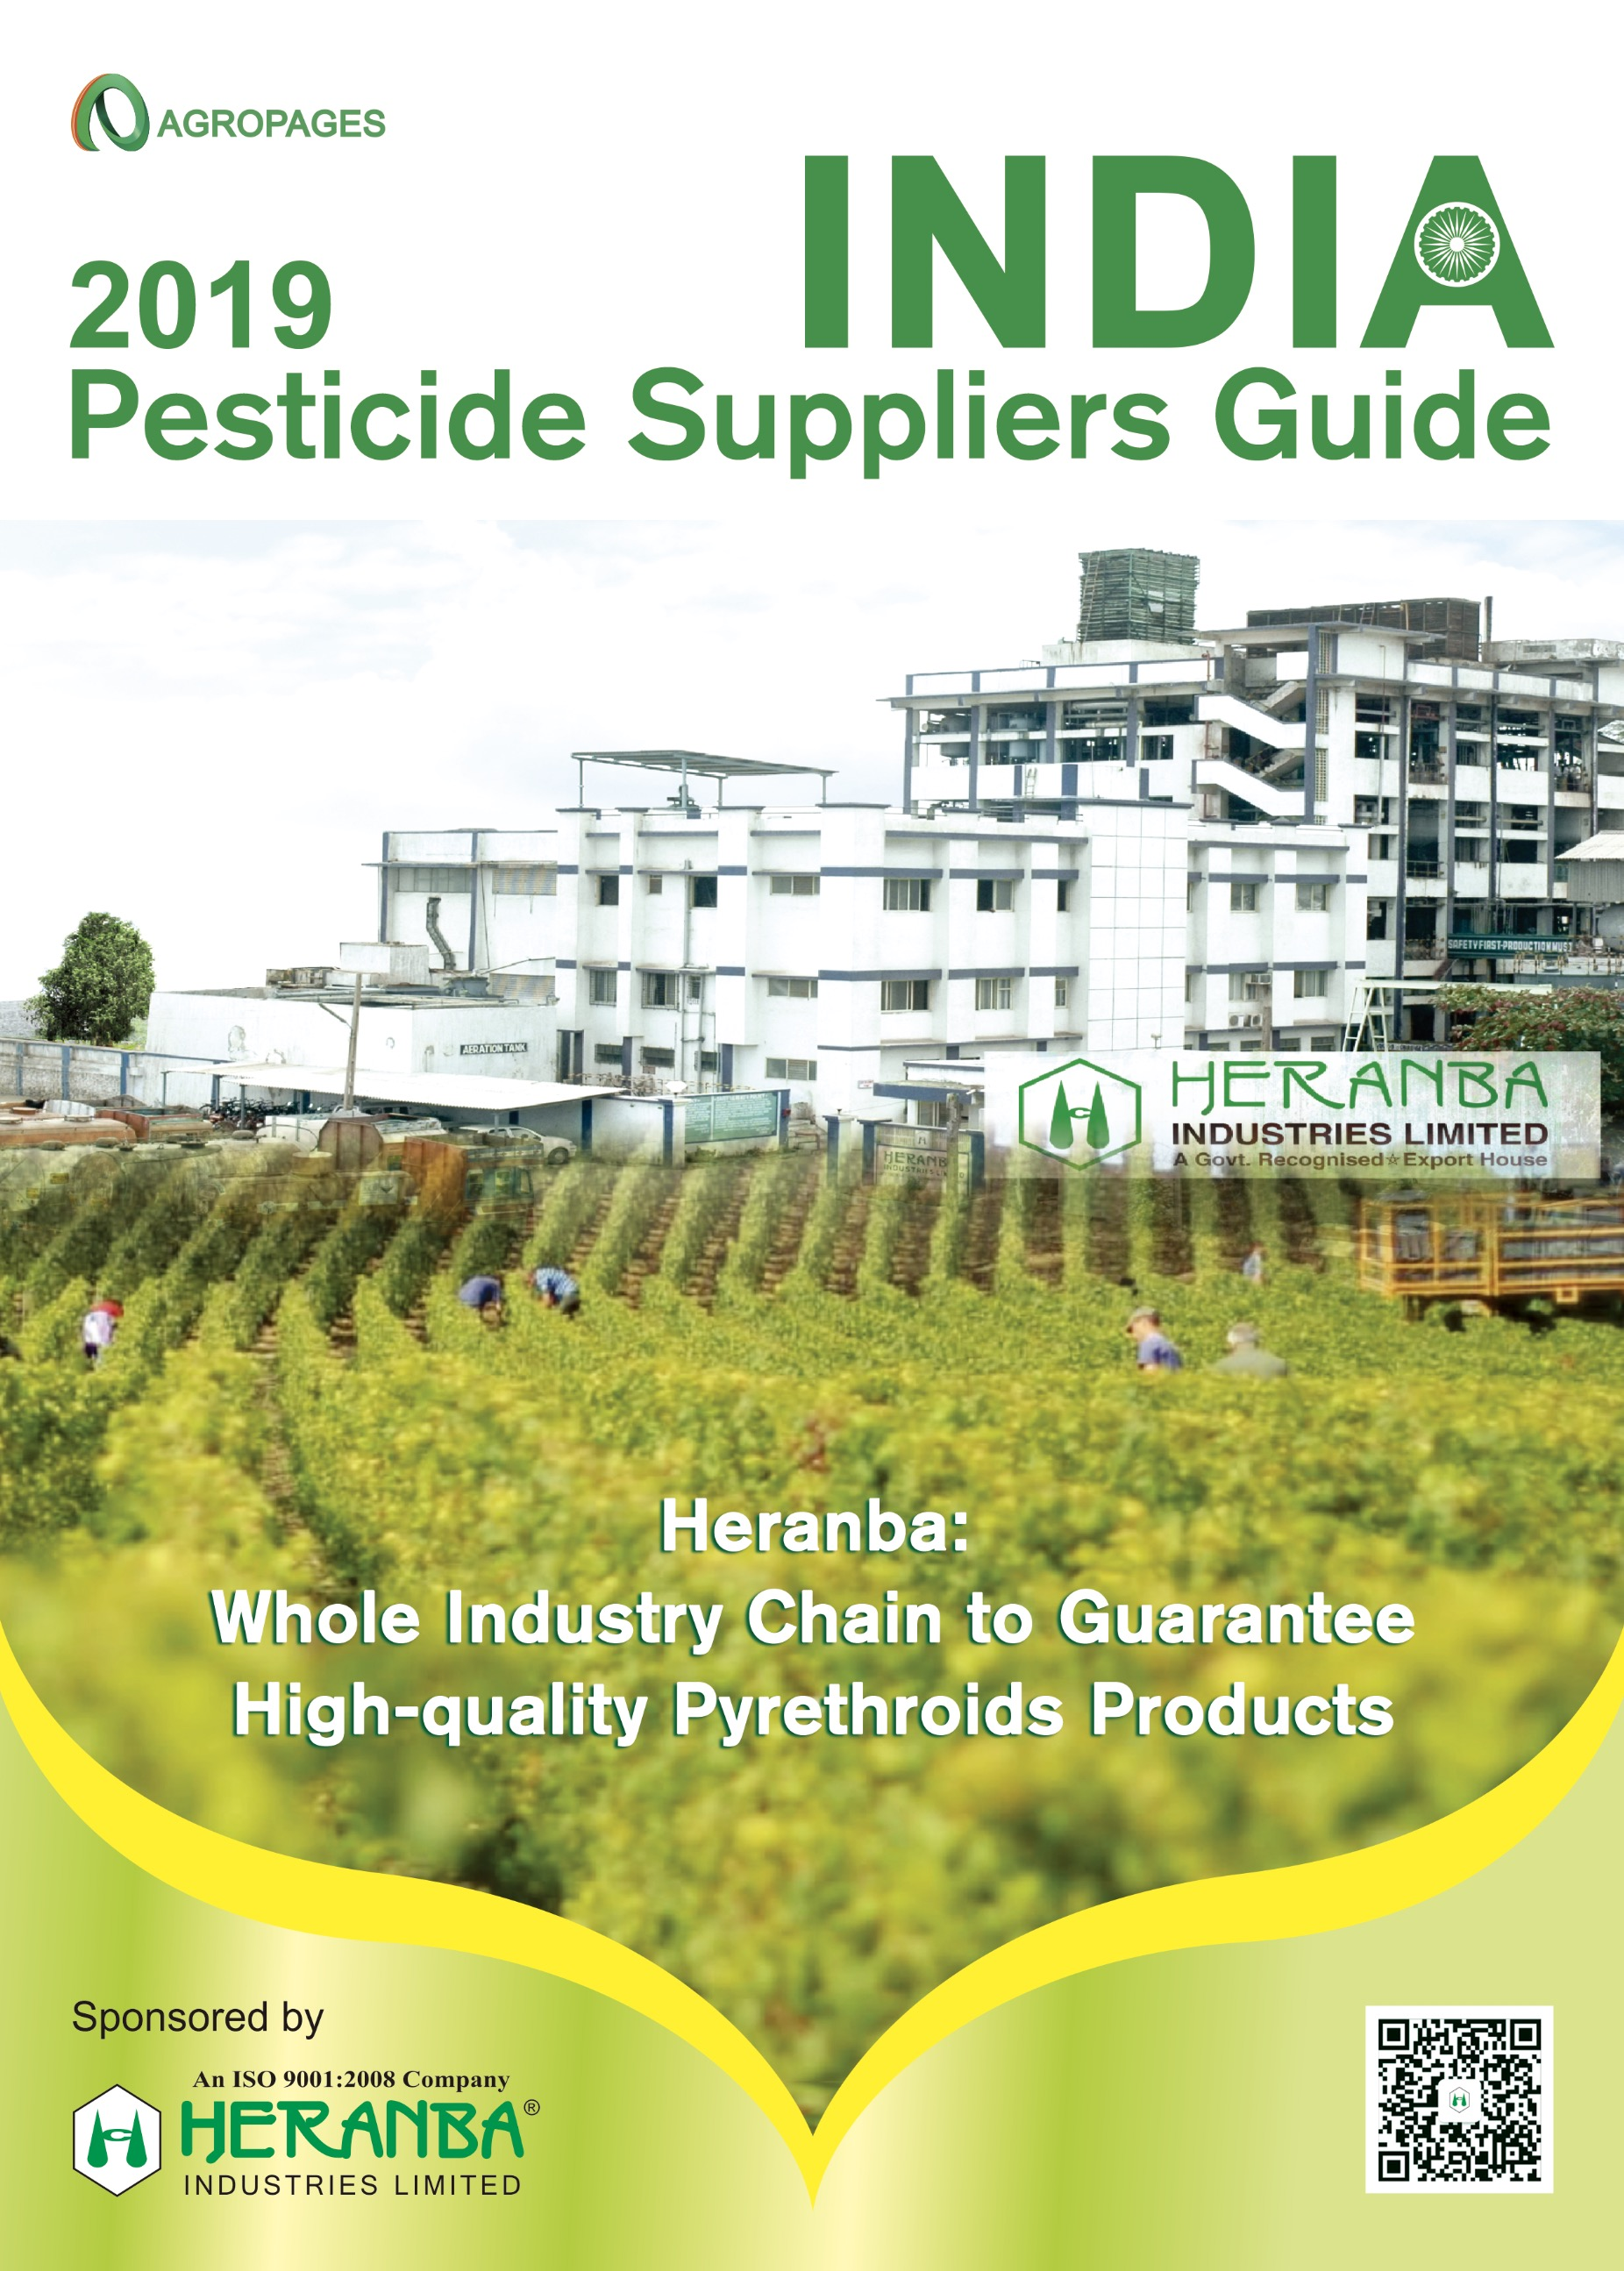 2019 India Pesticide Suppliers Guide